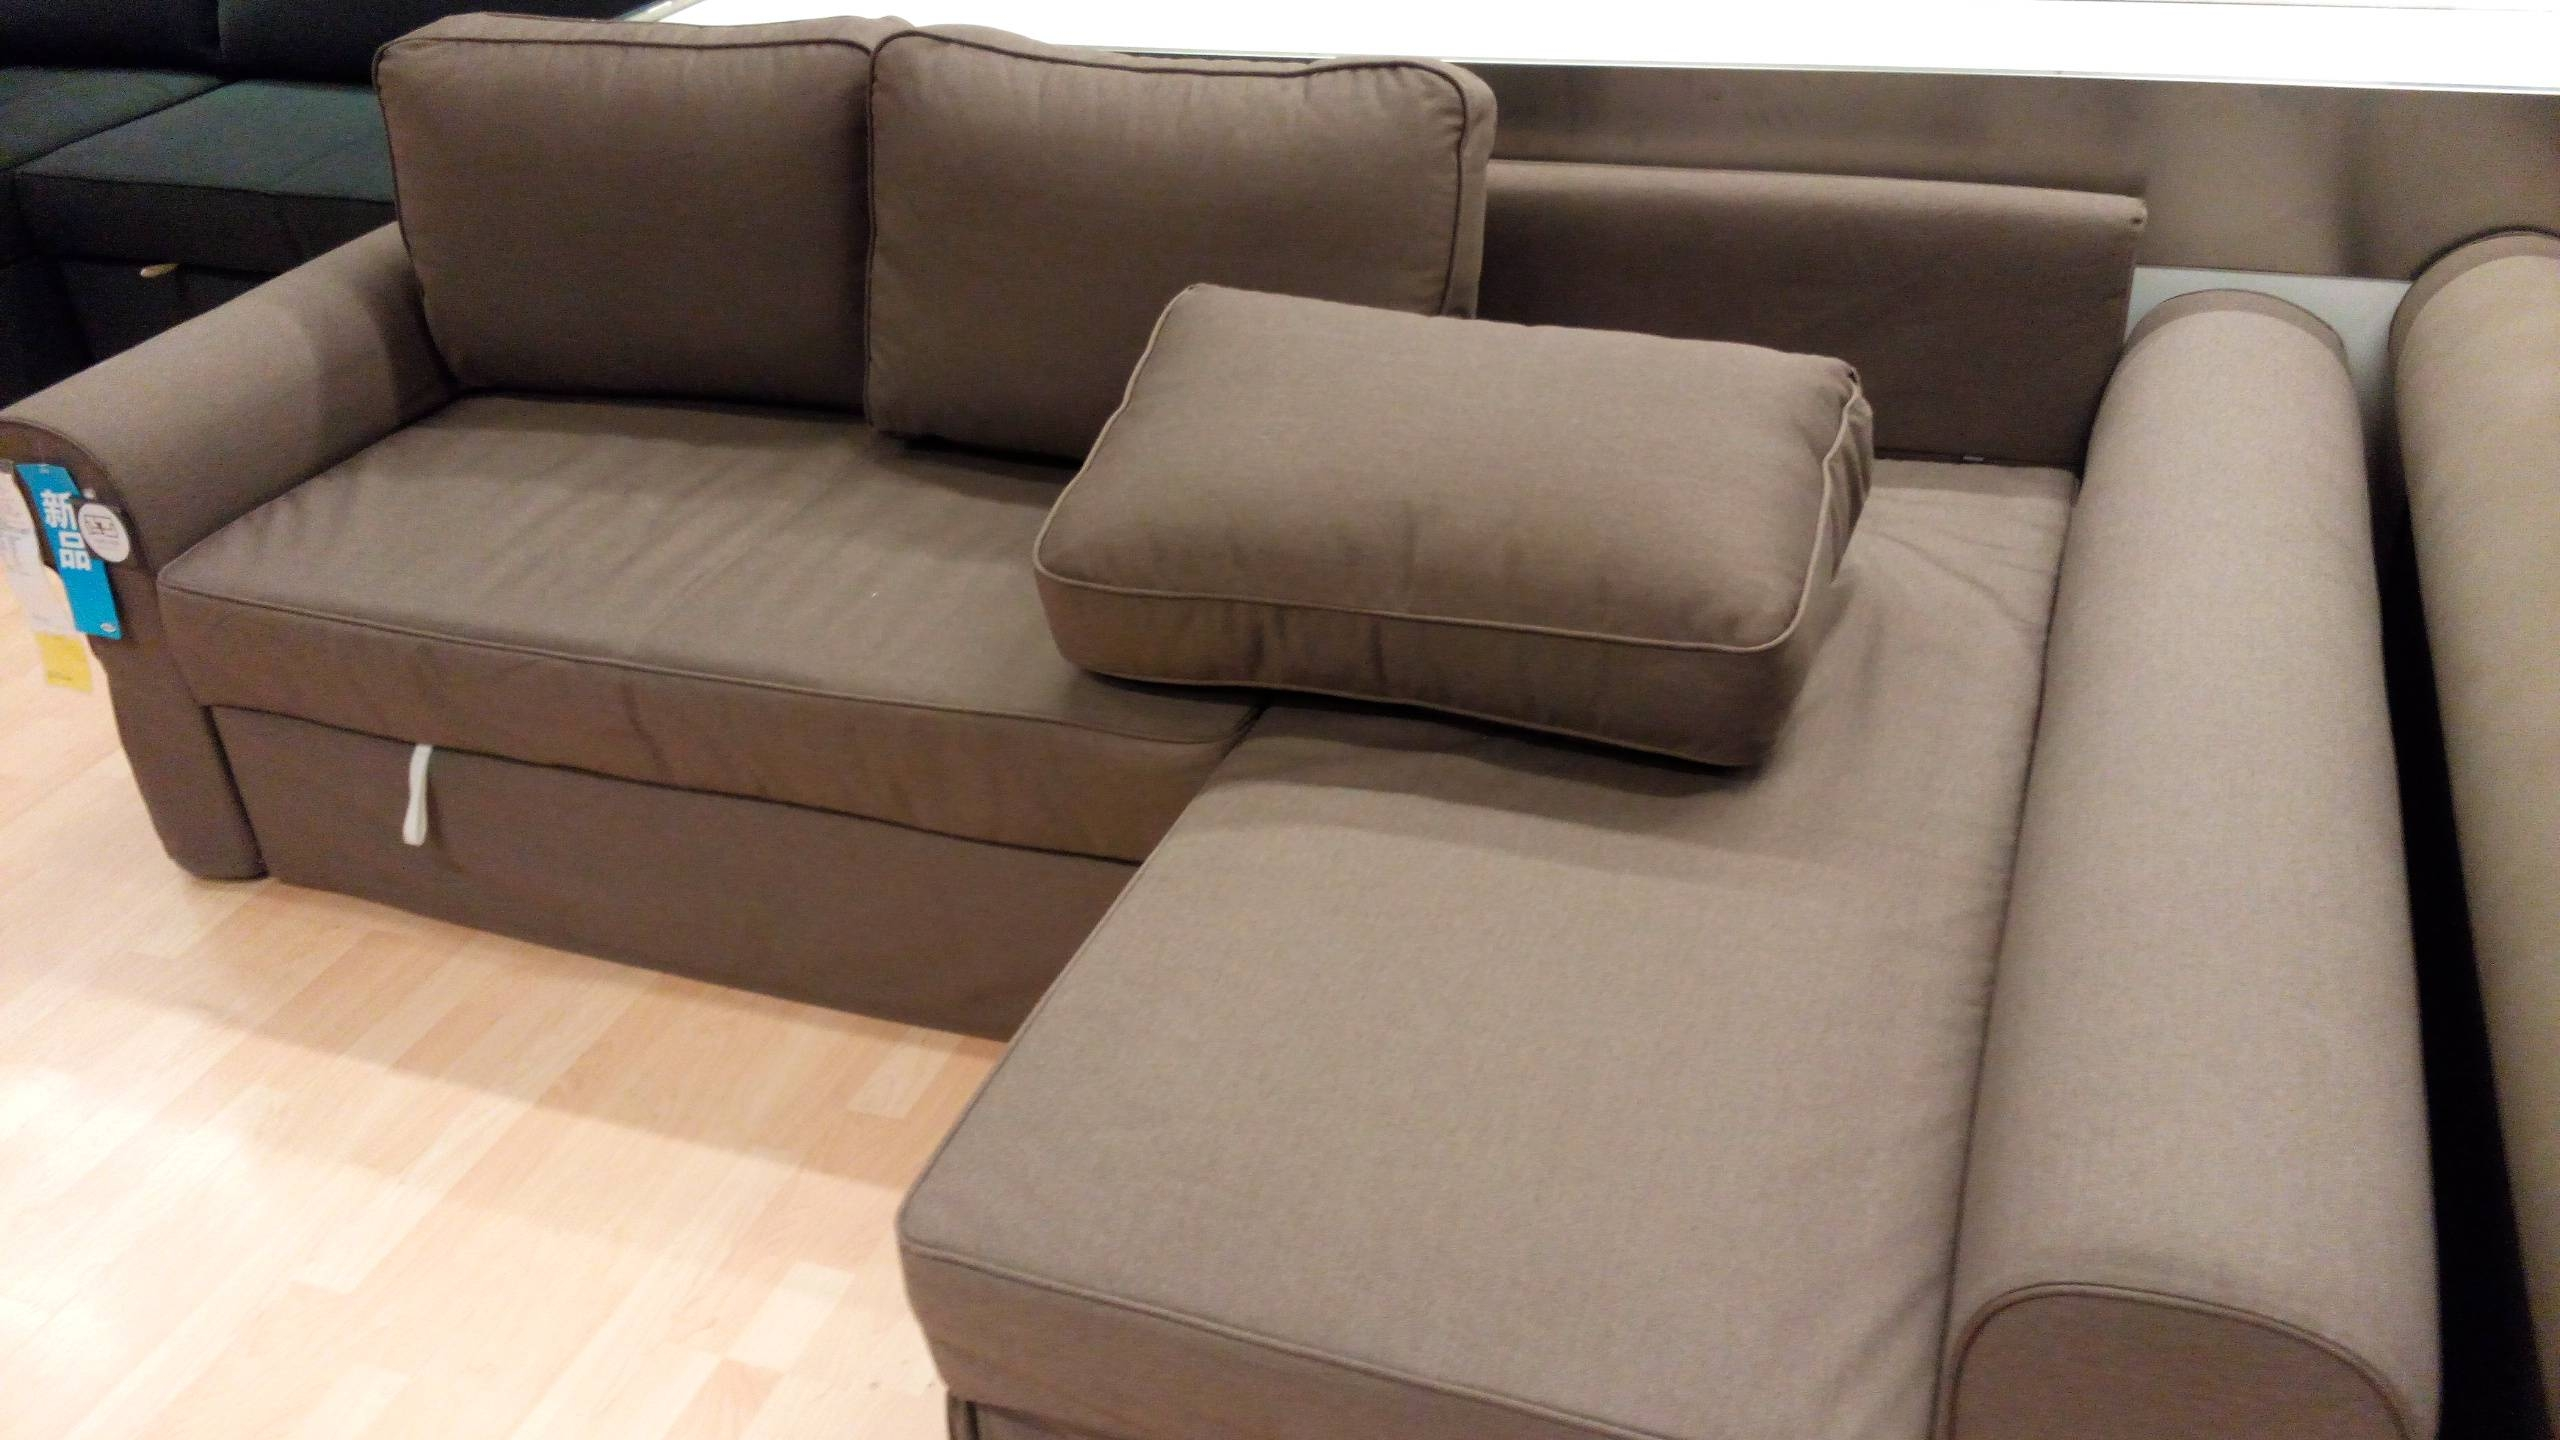 Furniture: Big Choice Of Styles And Colors Futon Beds Ikea For With Sleeper Sofa Sectional Ikea (View 10 of 25)